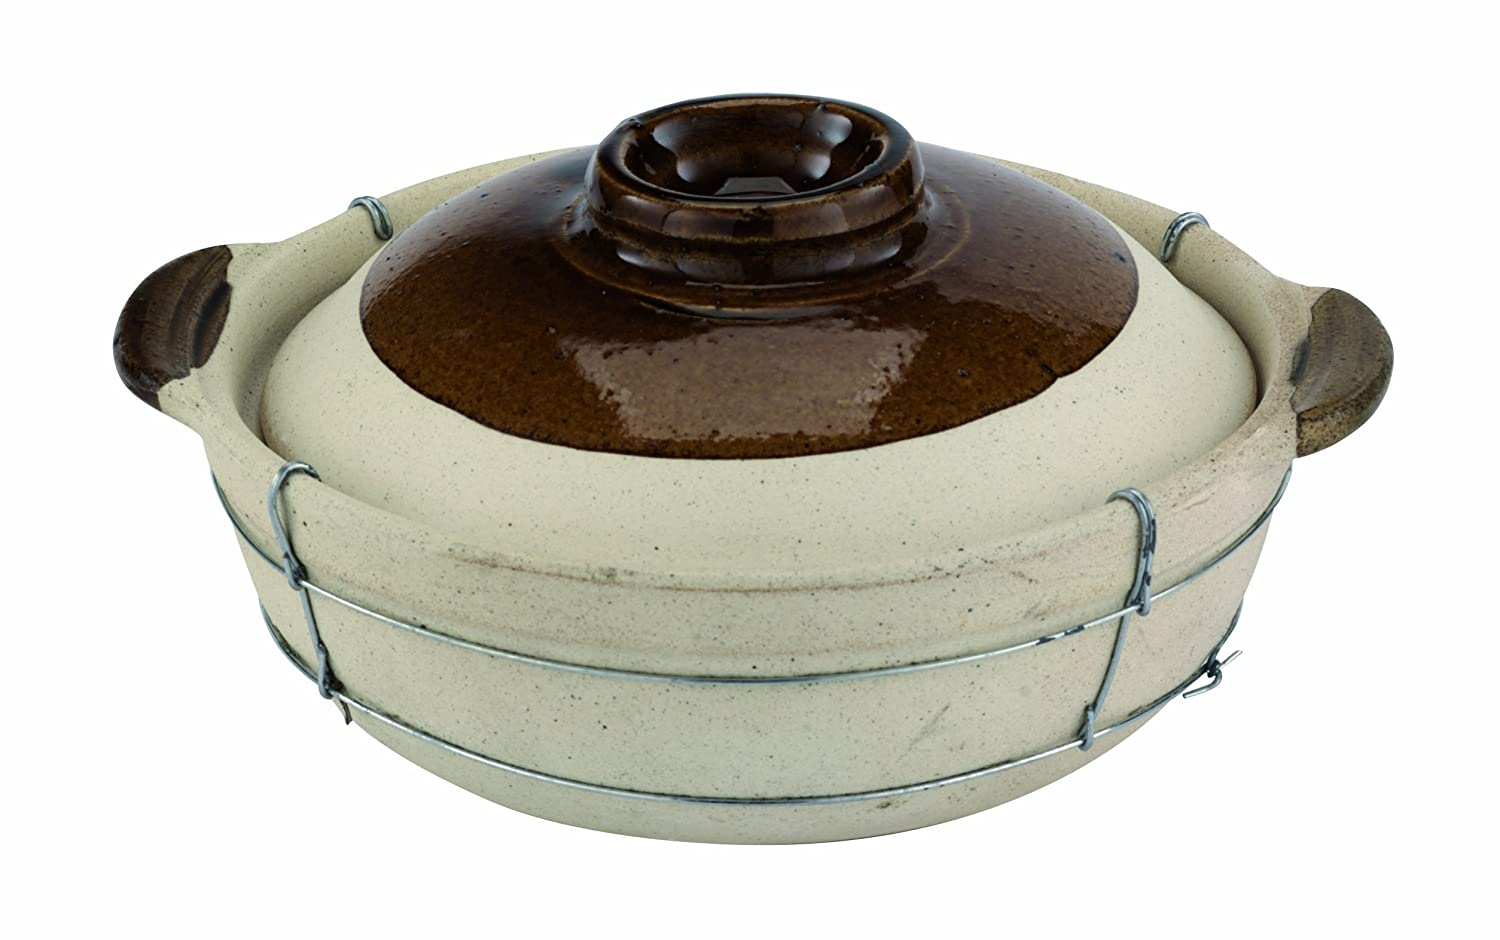 Paderno World Cuisine Dual-Handled Unglazed Cooking Pot with Lid 49632-24